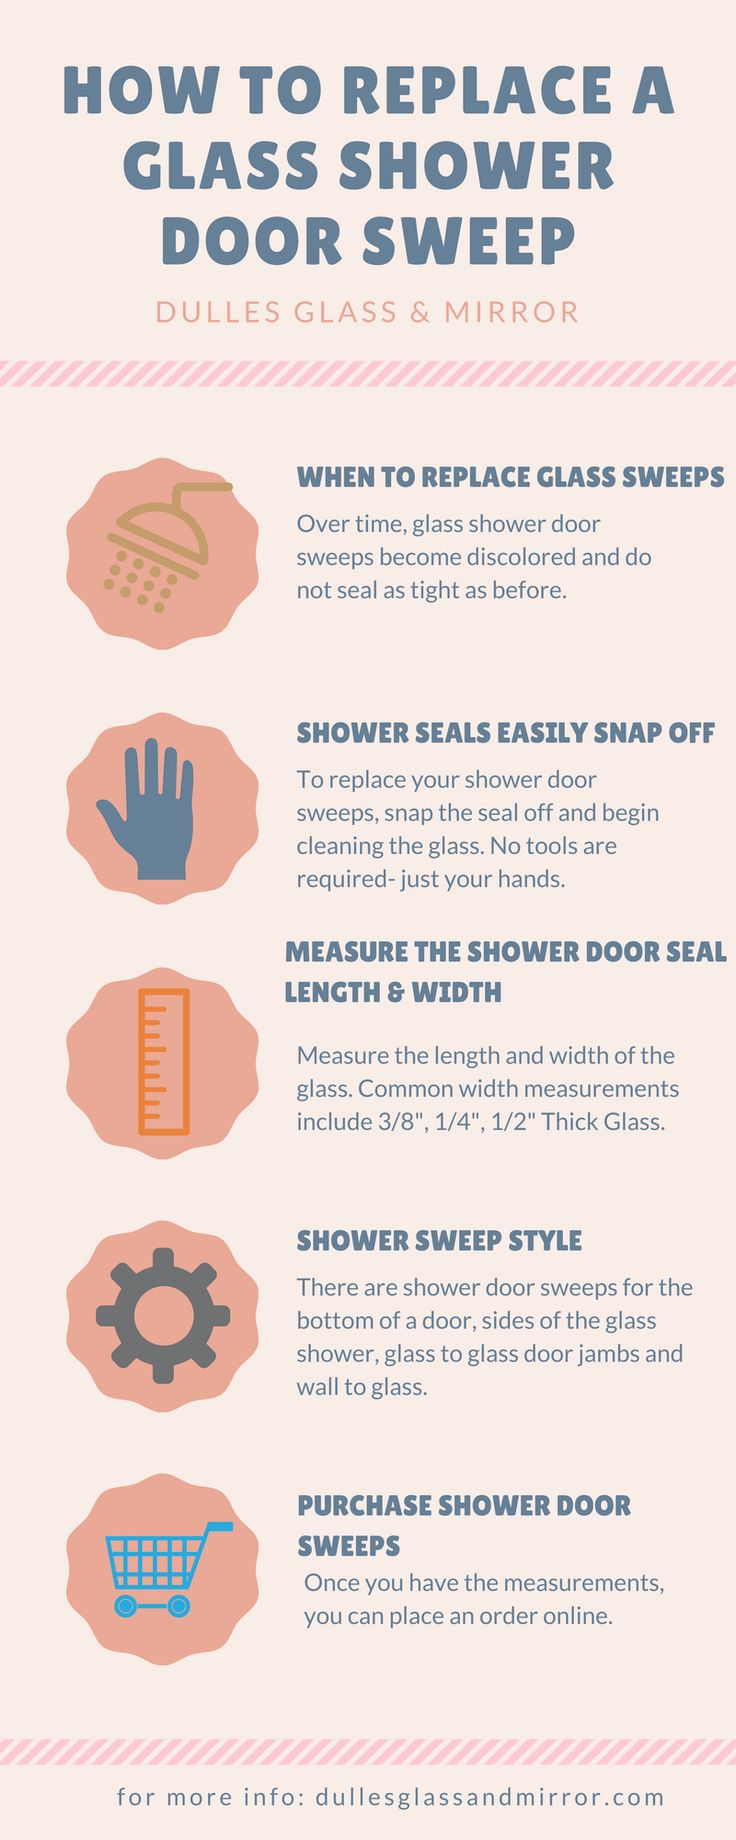 Shower door seals and sweeps